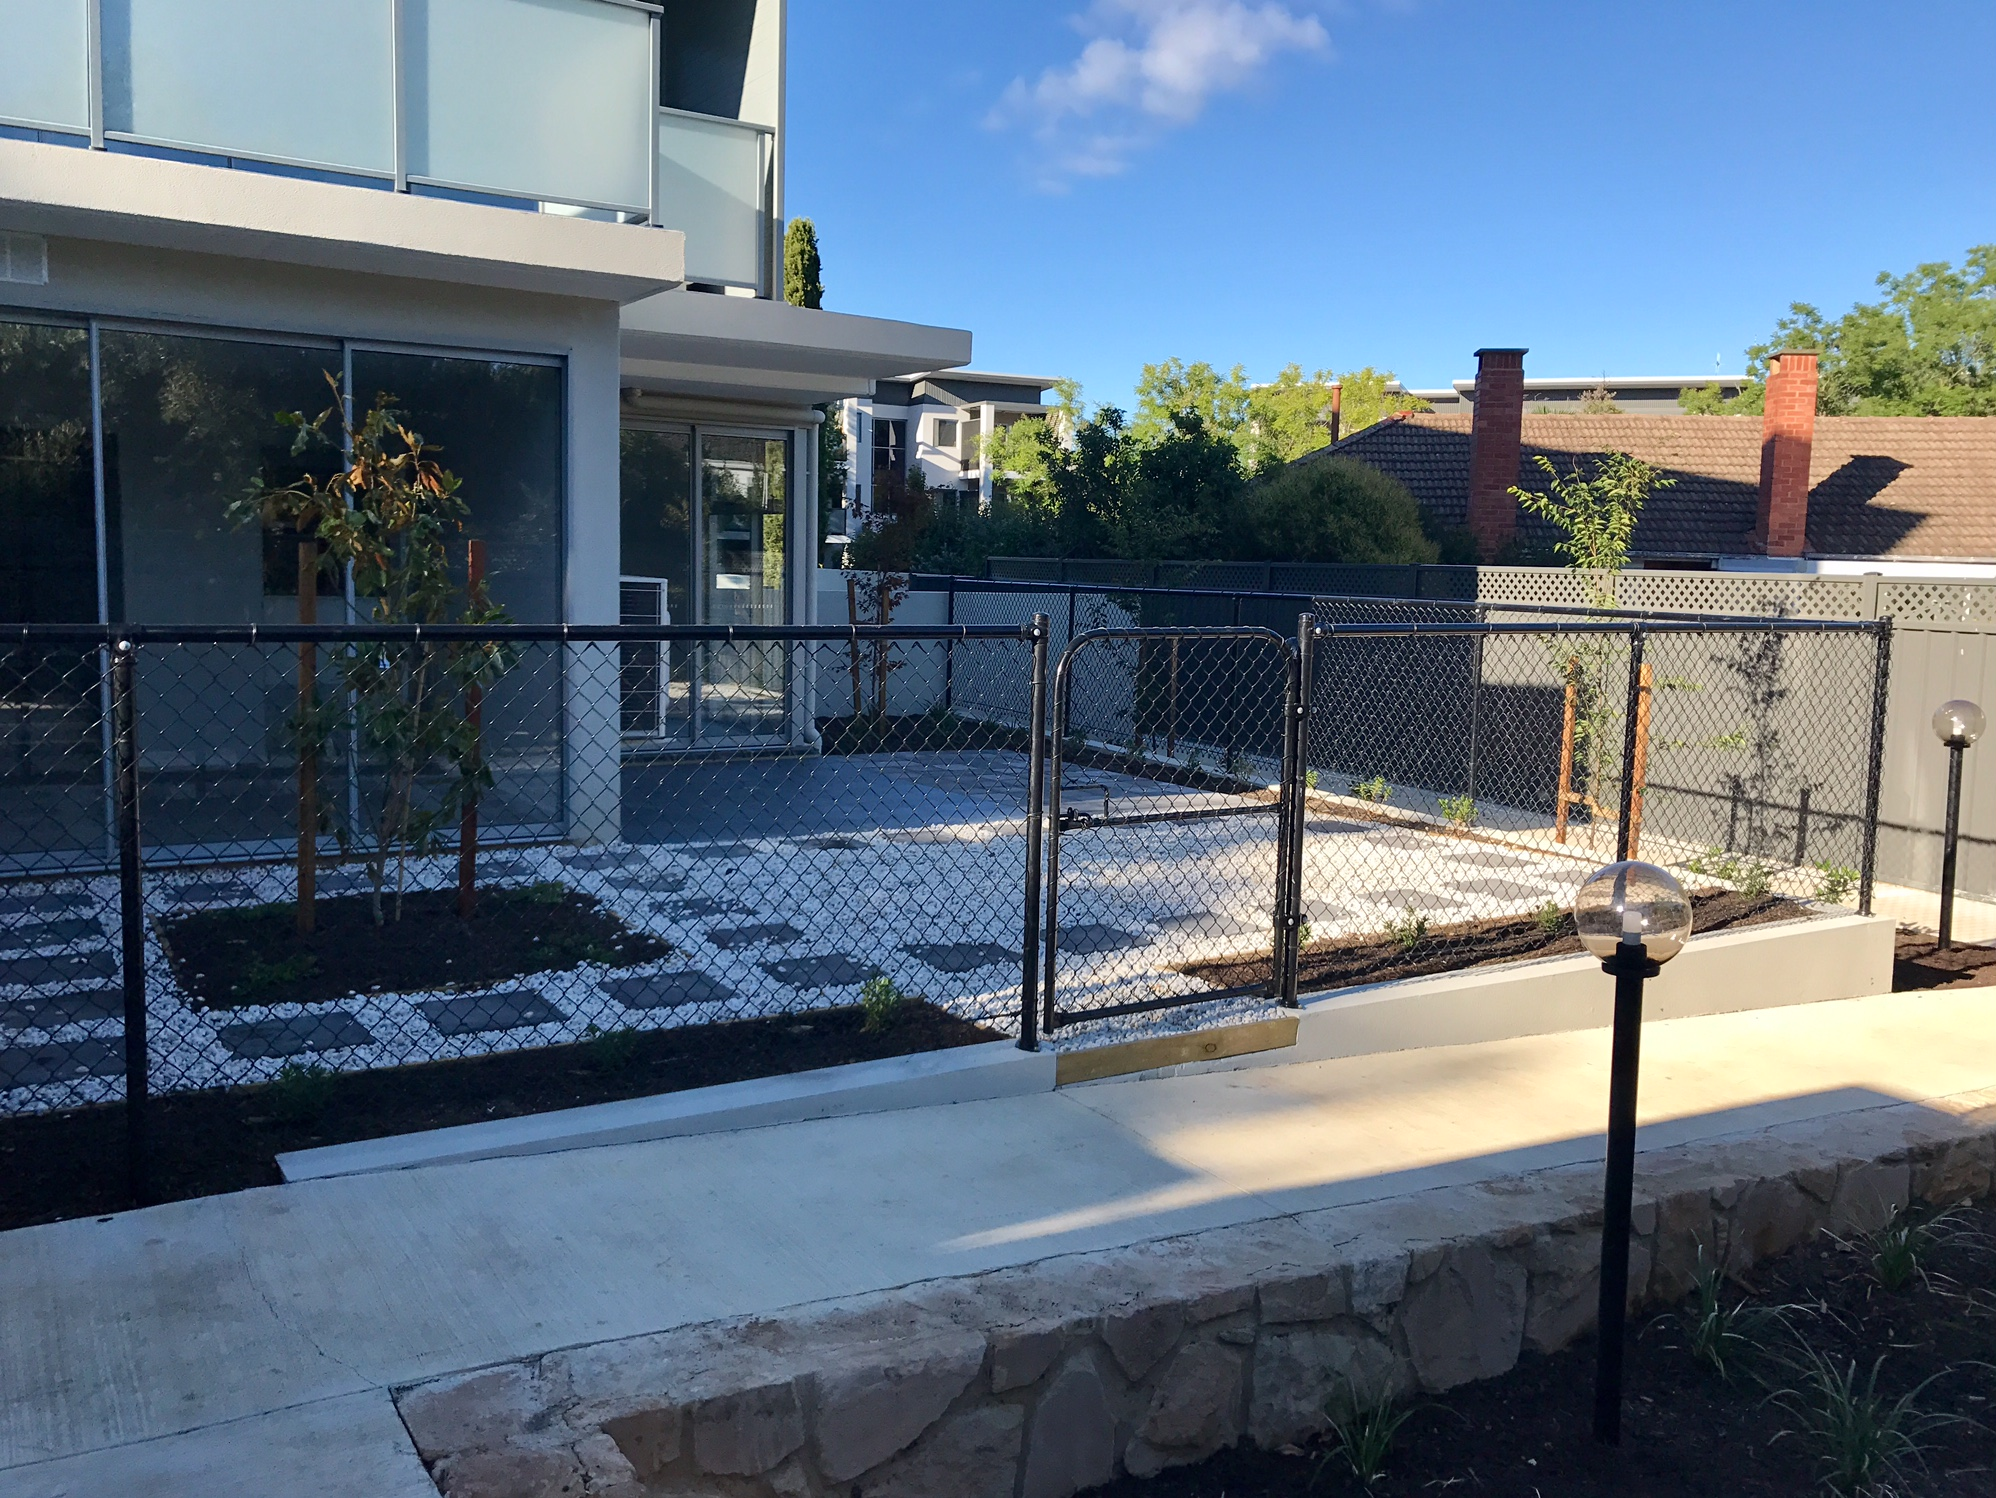 Photo of Installation of Black Chain-wire Fence in Canberra